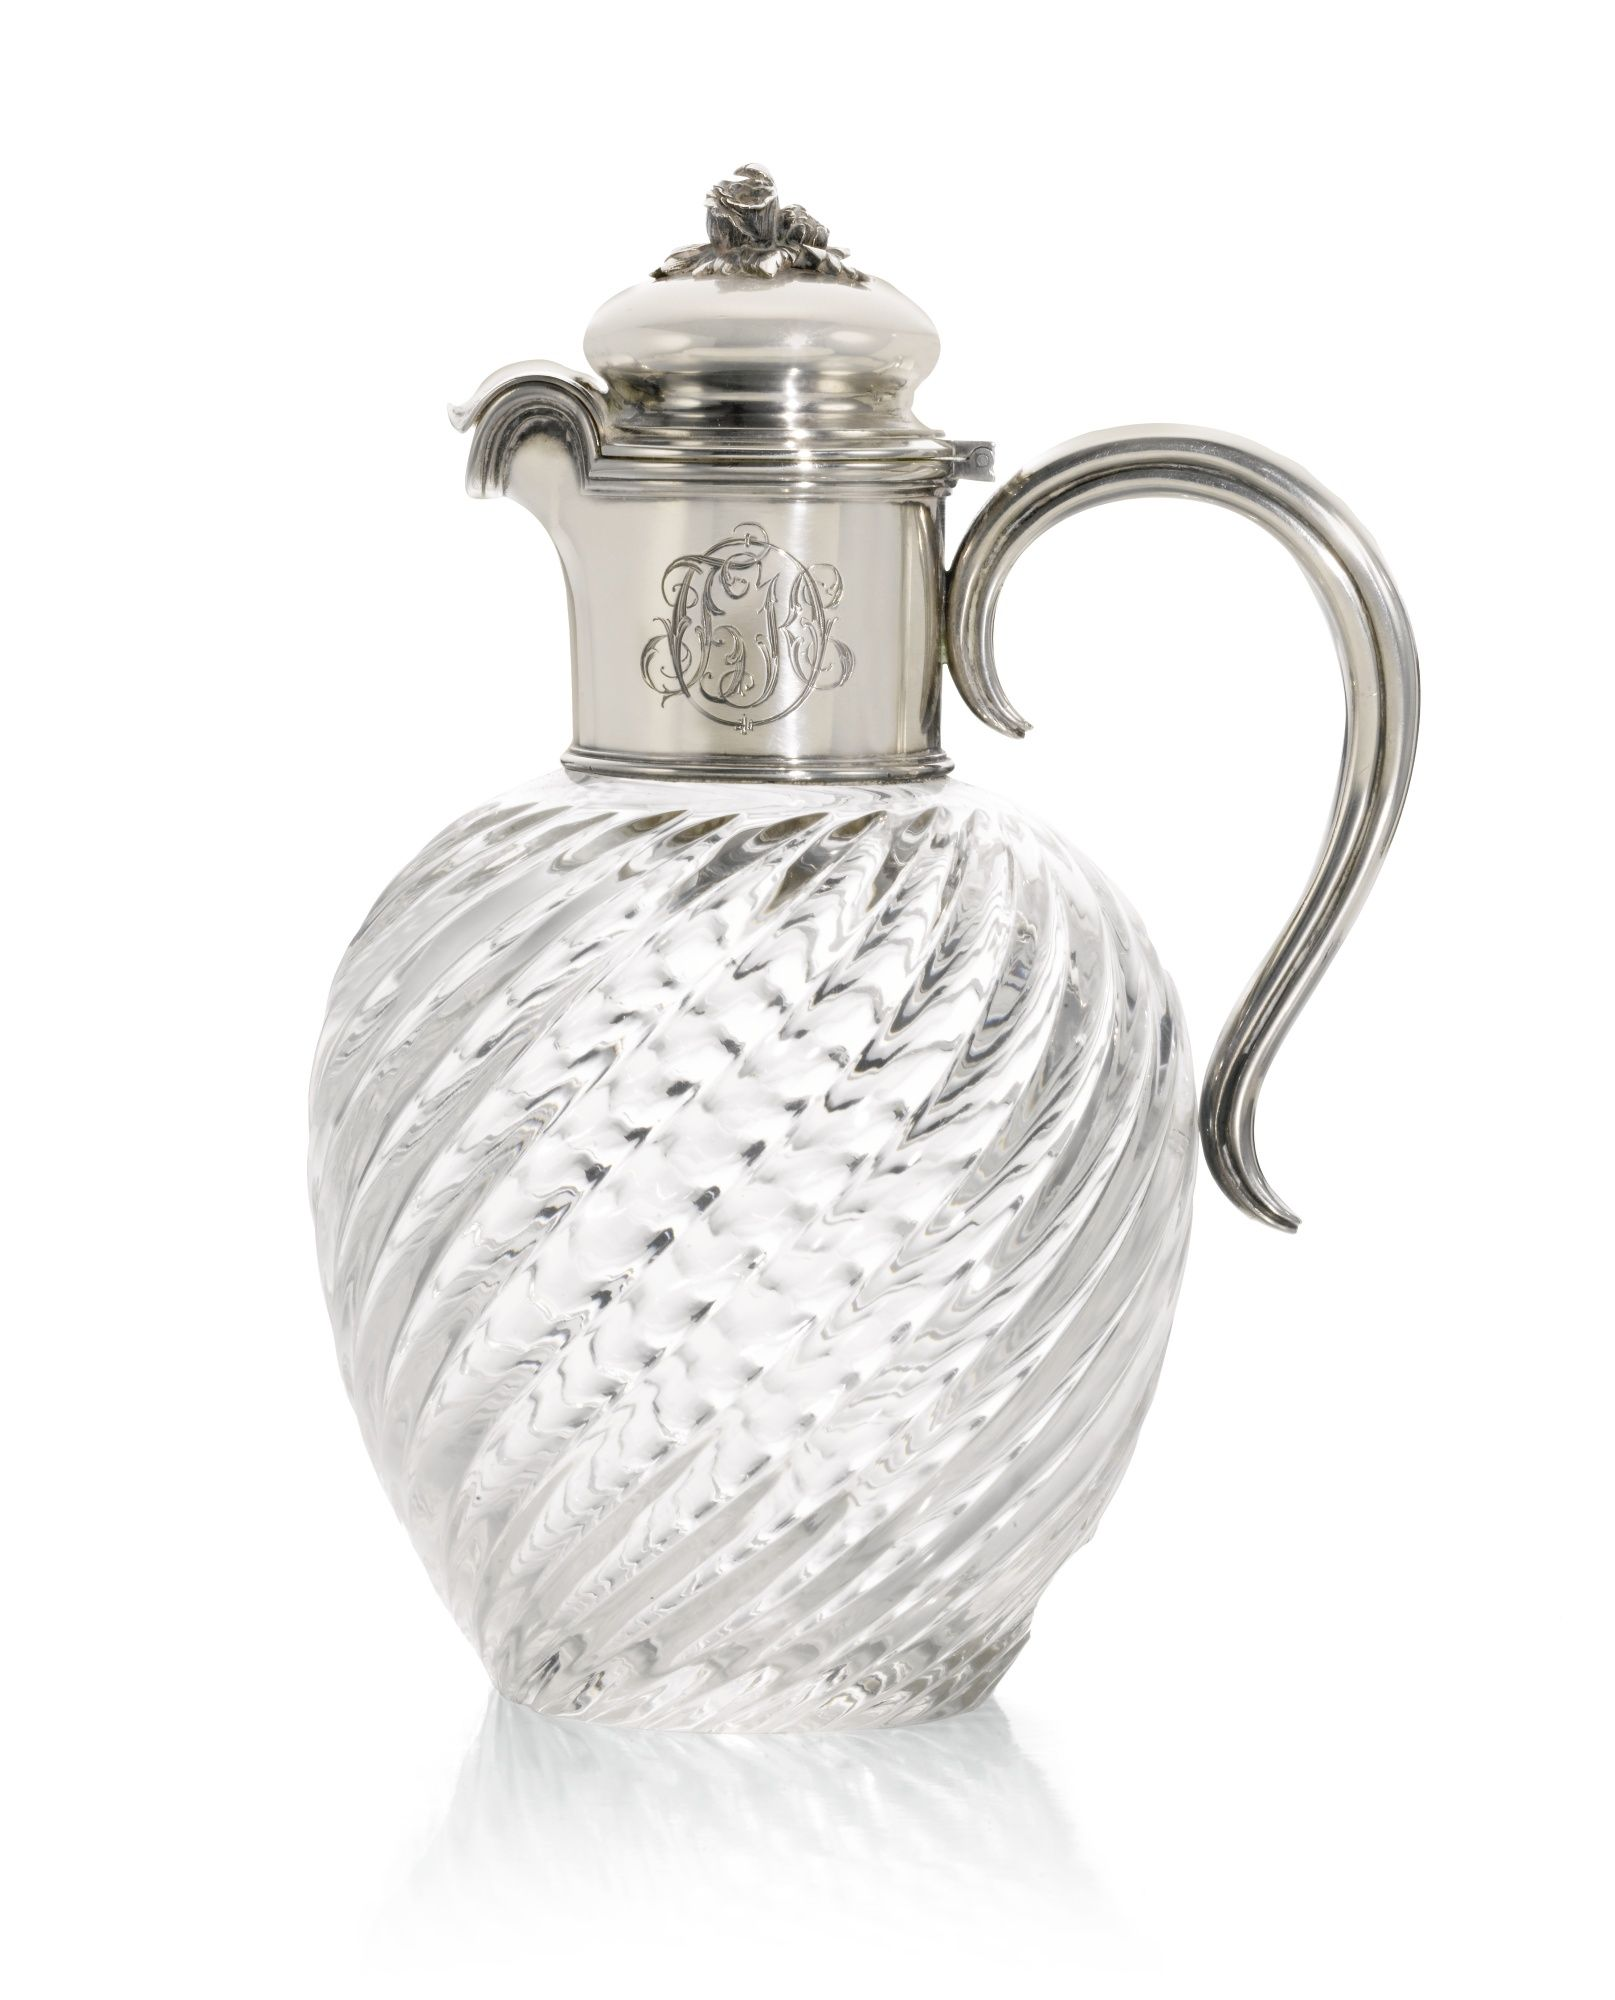 A FABERGÉ SILVER-MOUNTED GLASS DECANTER, MOSCOW, CIRCA 1890 of baluster form, the glass moulded with swirling reeds, the plain neck later dated 1926 and engraved with Cyrillic initials BKO, scroll handle, foliate finial, struck K.Fabergé in Cyrillic beneath the Imperial Warrant, 84 standard, scratched inventory number 3648.